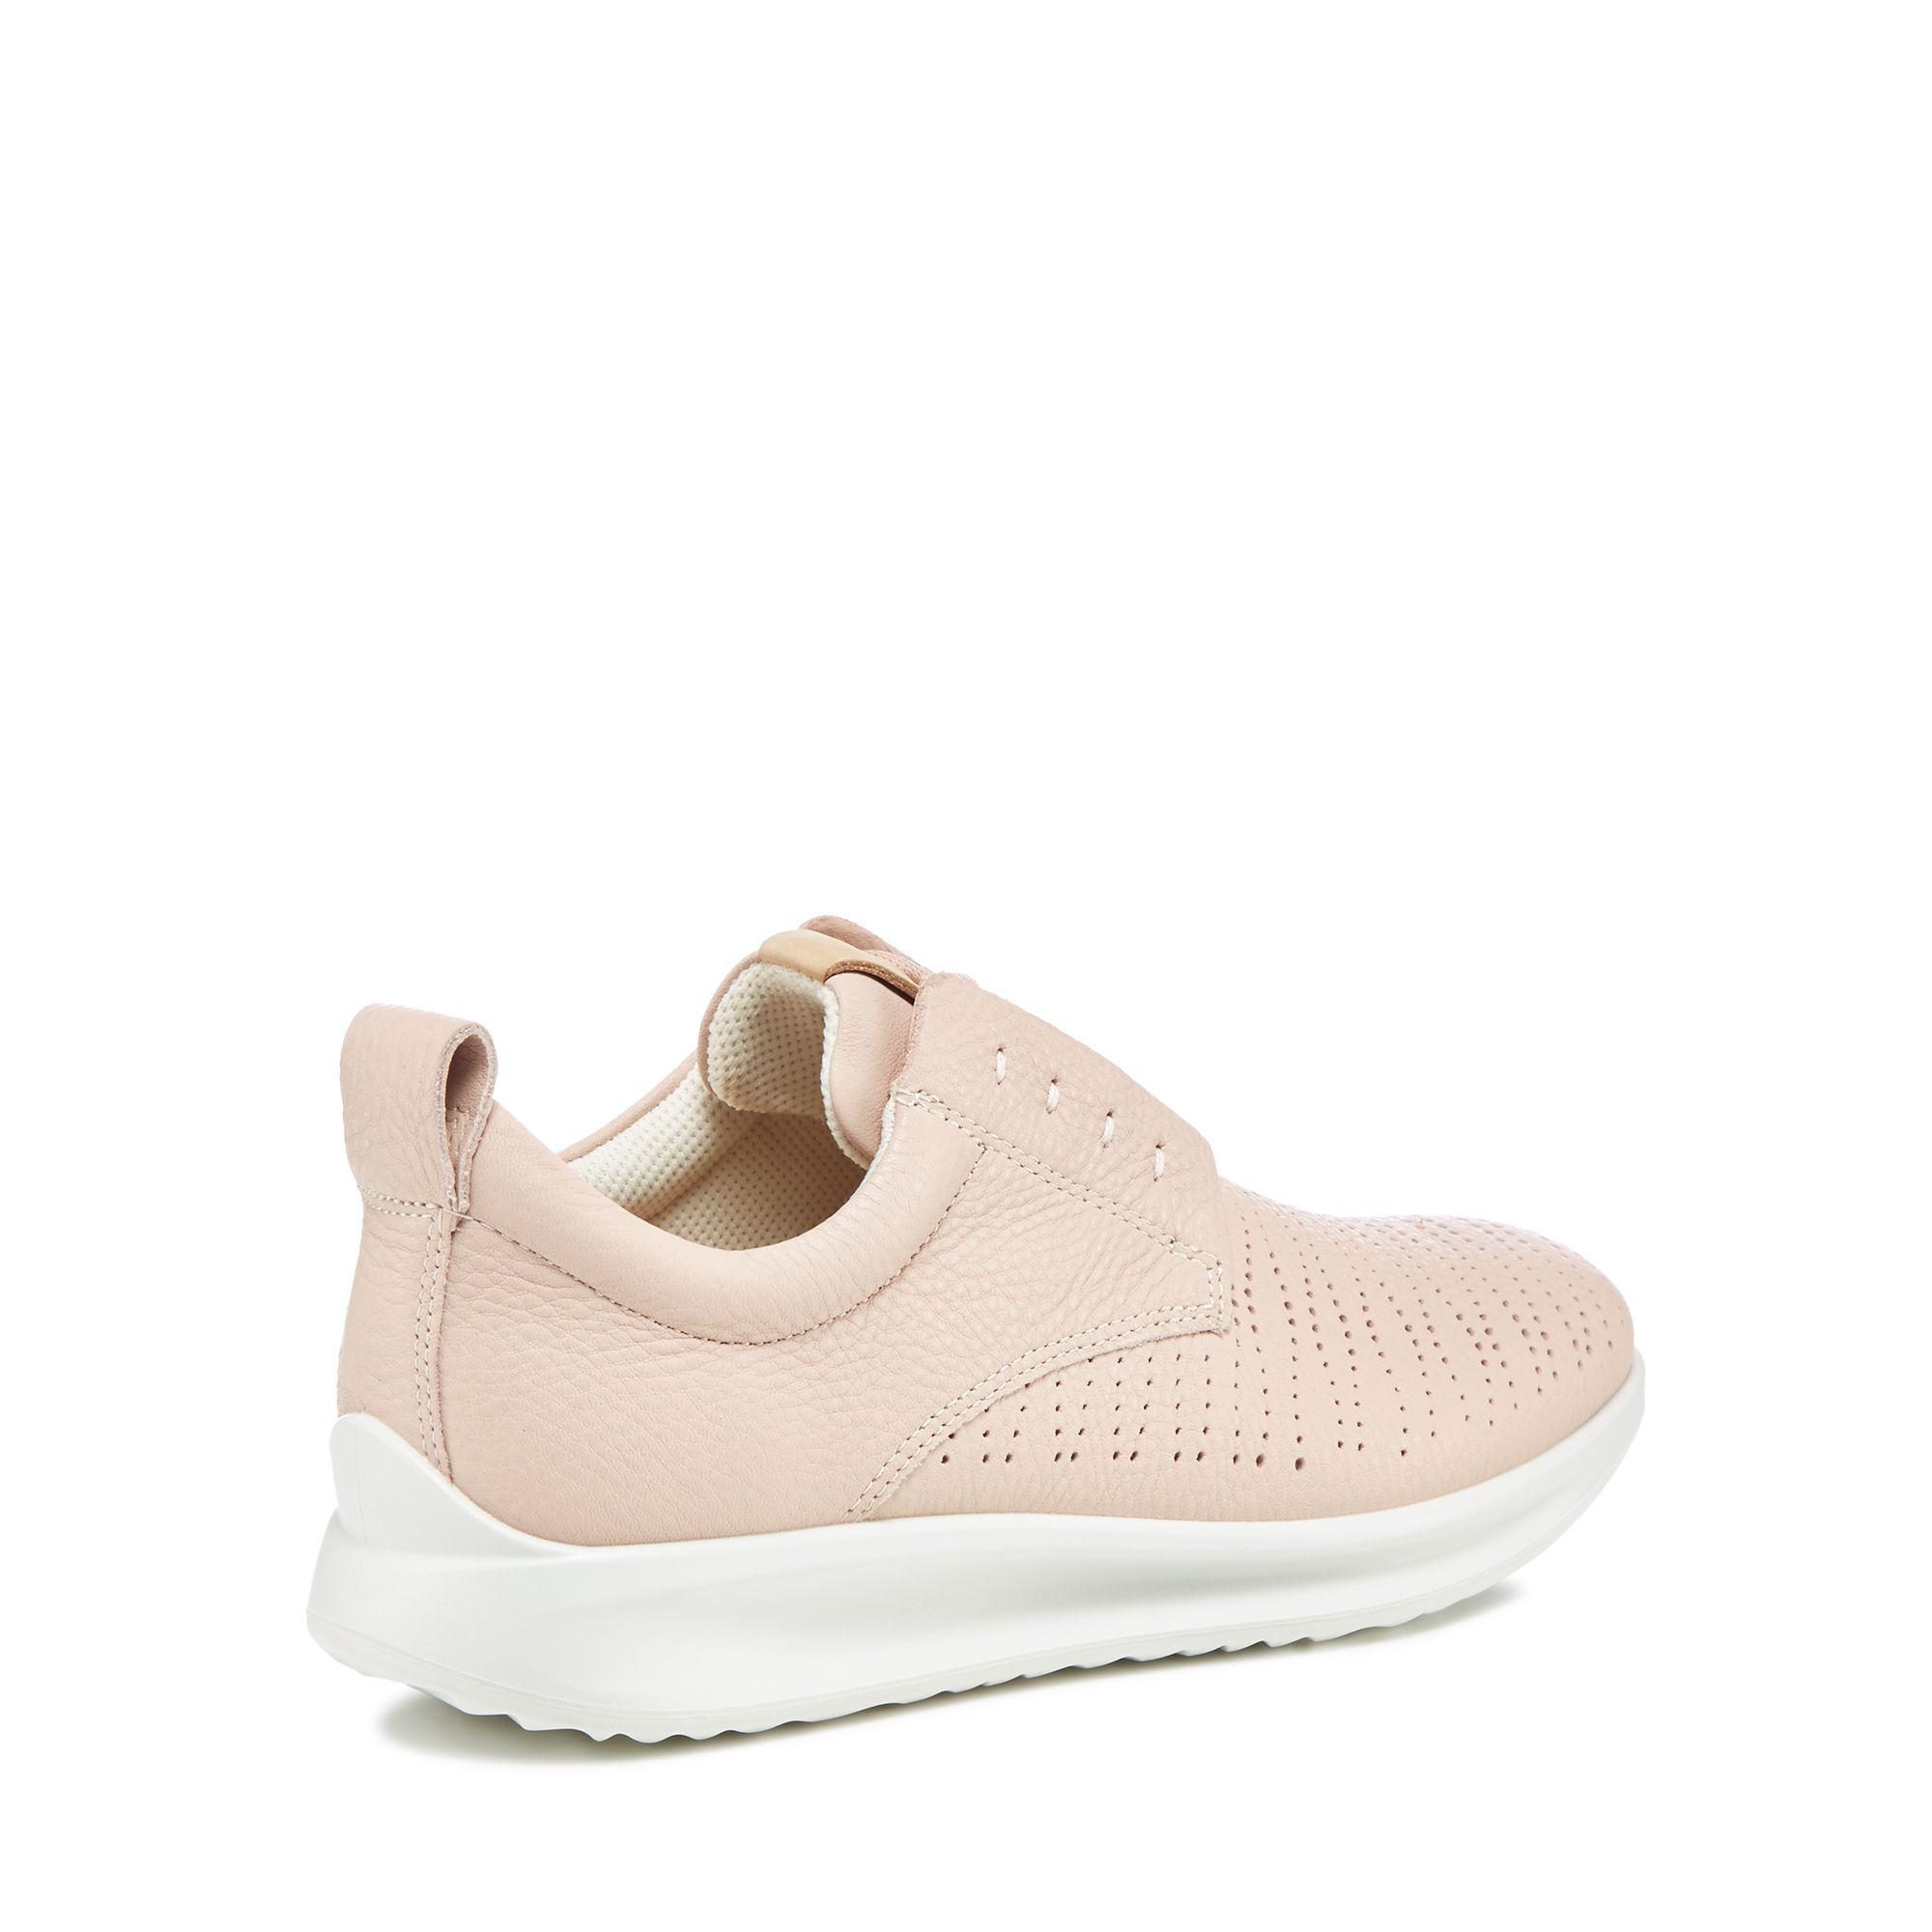 official supplier special section preview of Ecco Pink Leather 'aquet' Trainers - Lyst